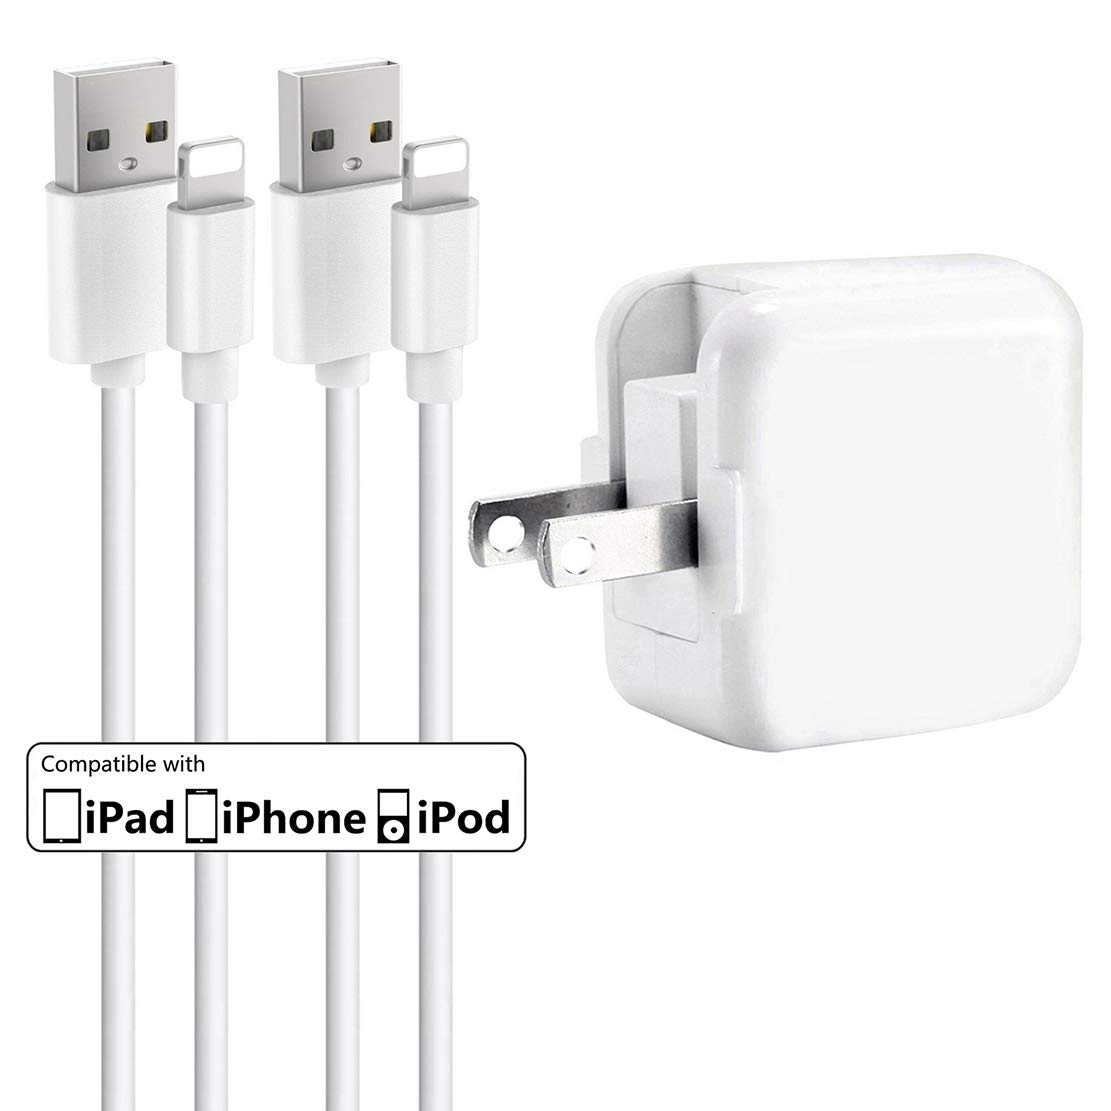 iPhone Charger iPad Charger,Baoota 2.4A 12W USB Wall Charger Foldable Portable Travel Plug and 2 Pack 8 Pin Charging Cable Compatible with iPhone,iPad by Baoota